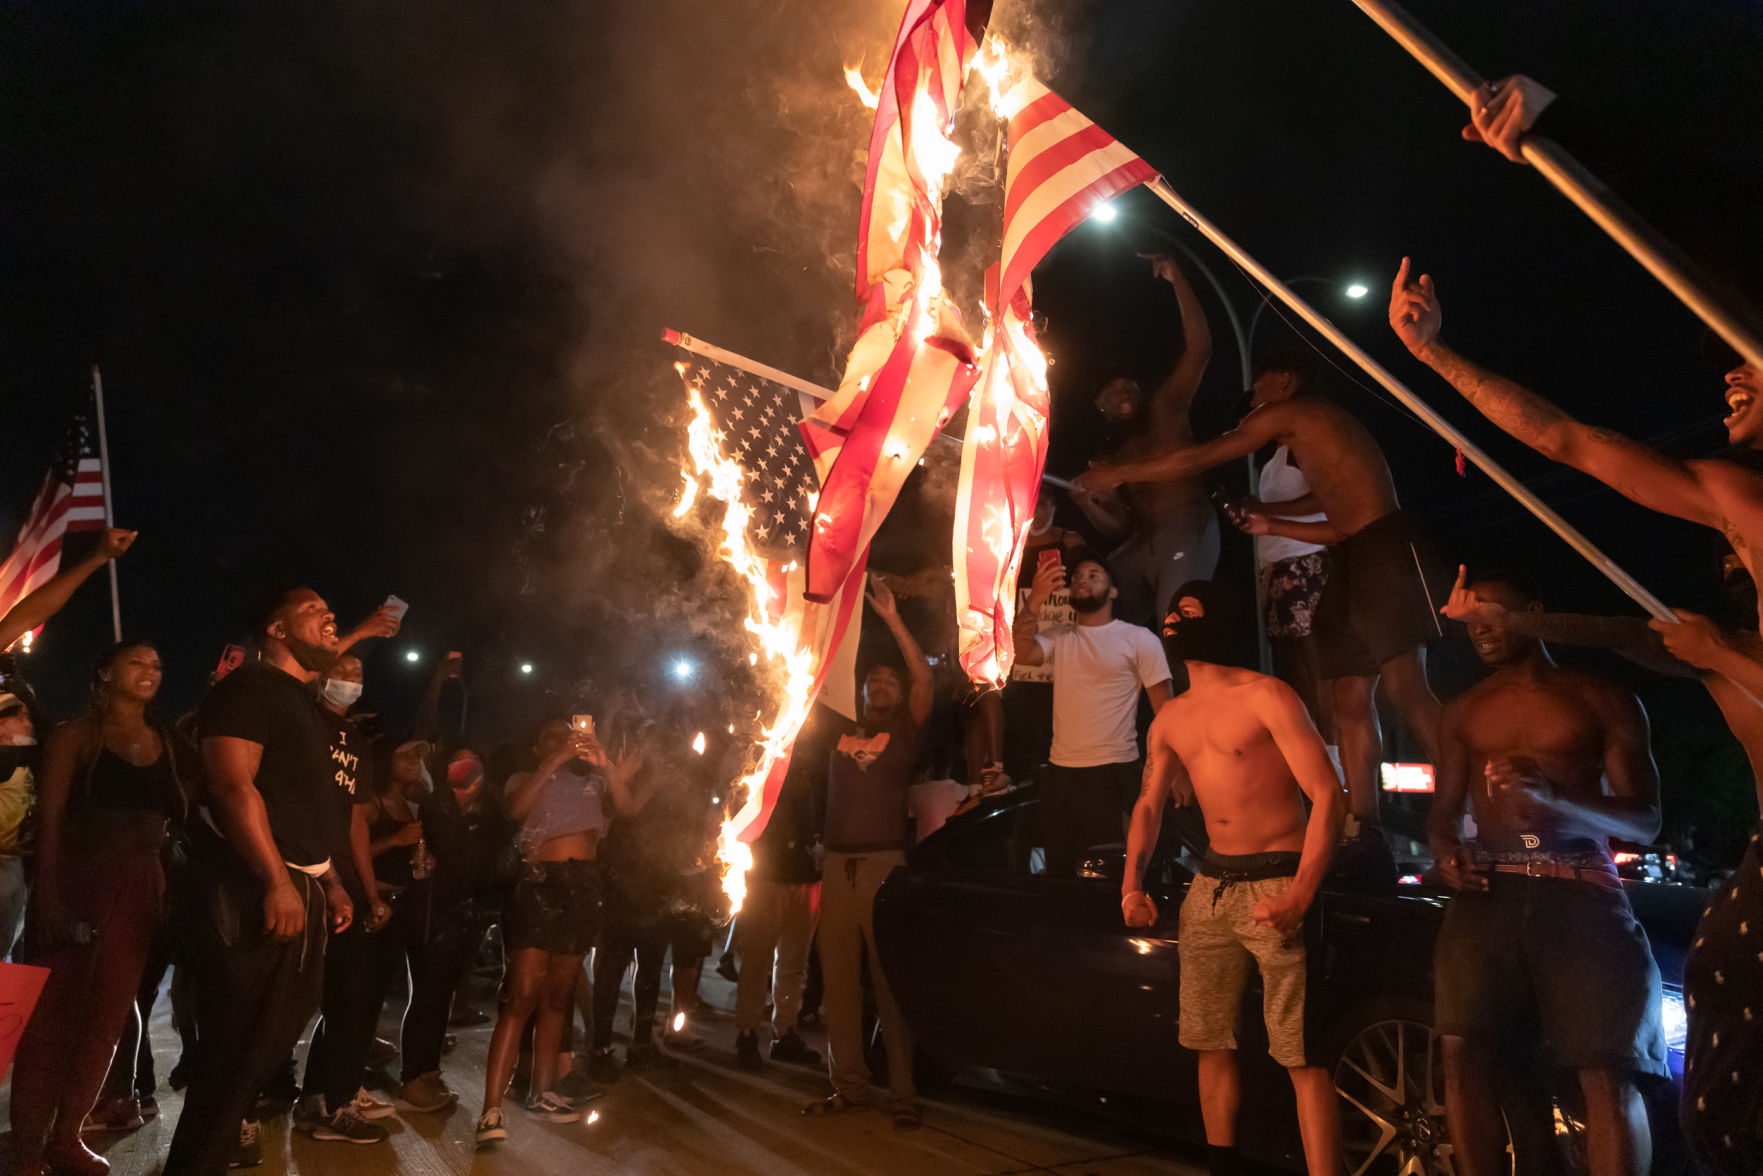 Photos: American flags set aflame in Arlington during protest against police brutality